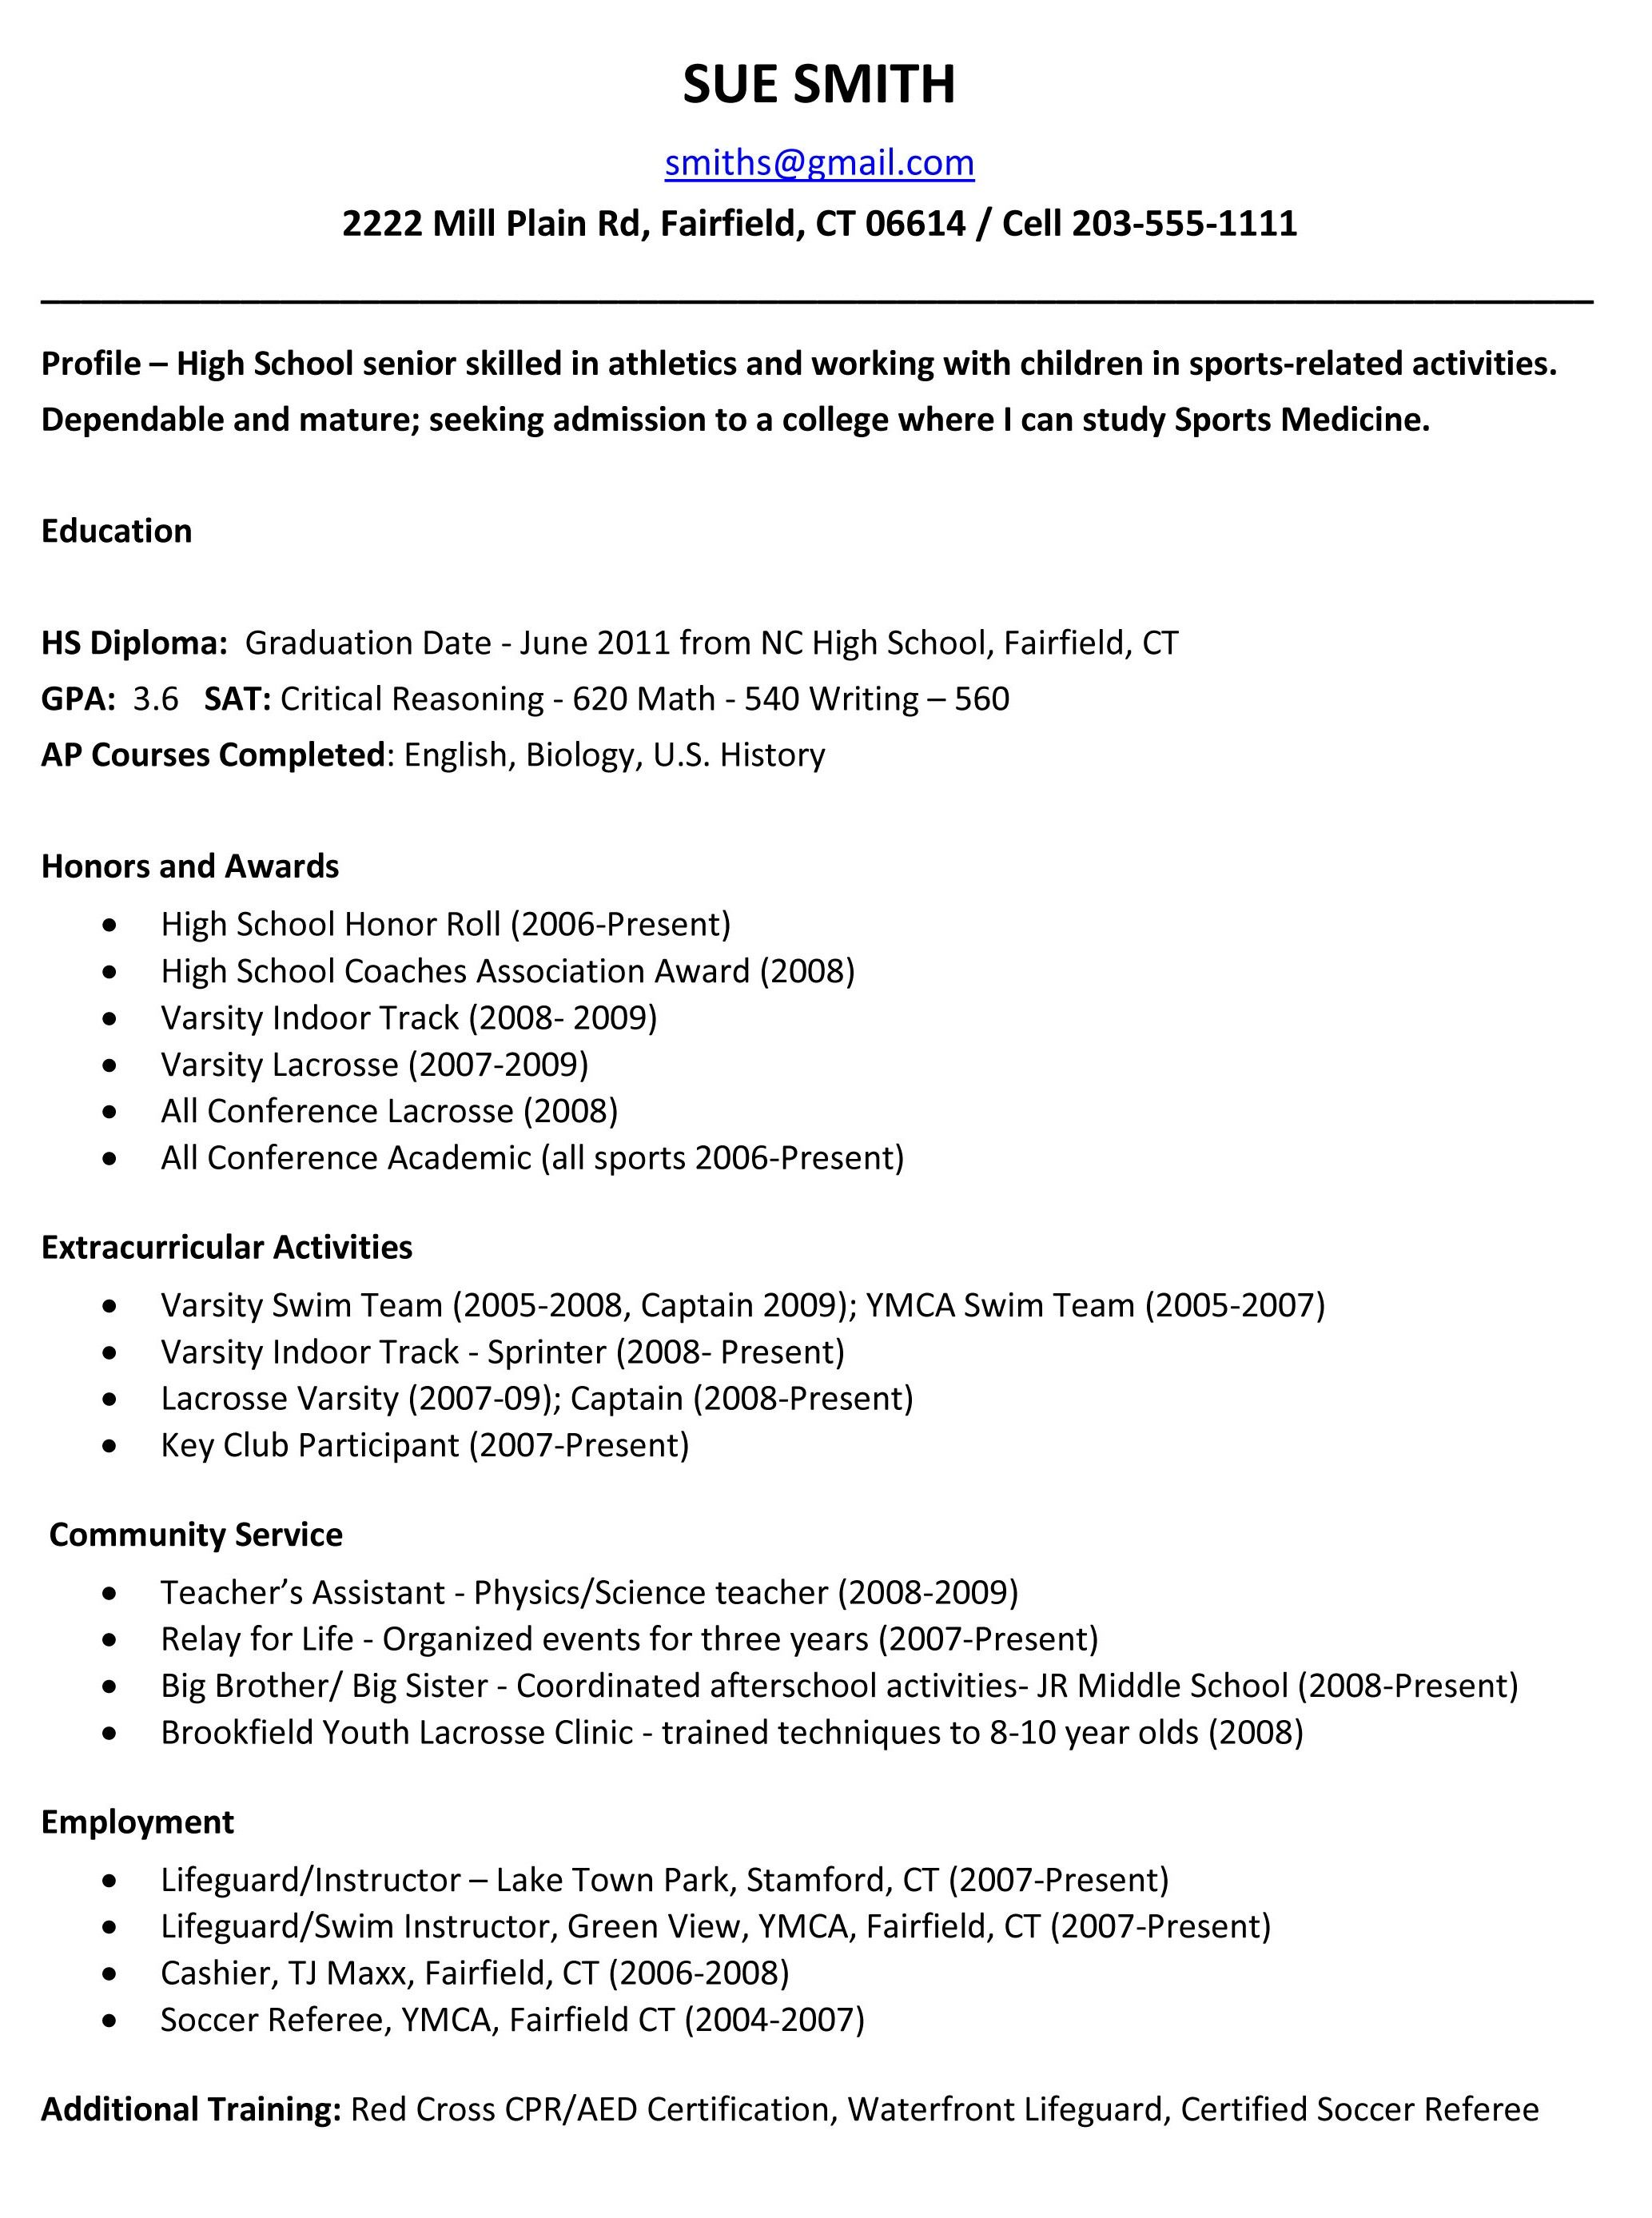 Resume For Freshman In College Example Resume For High School Students For College